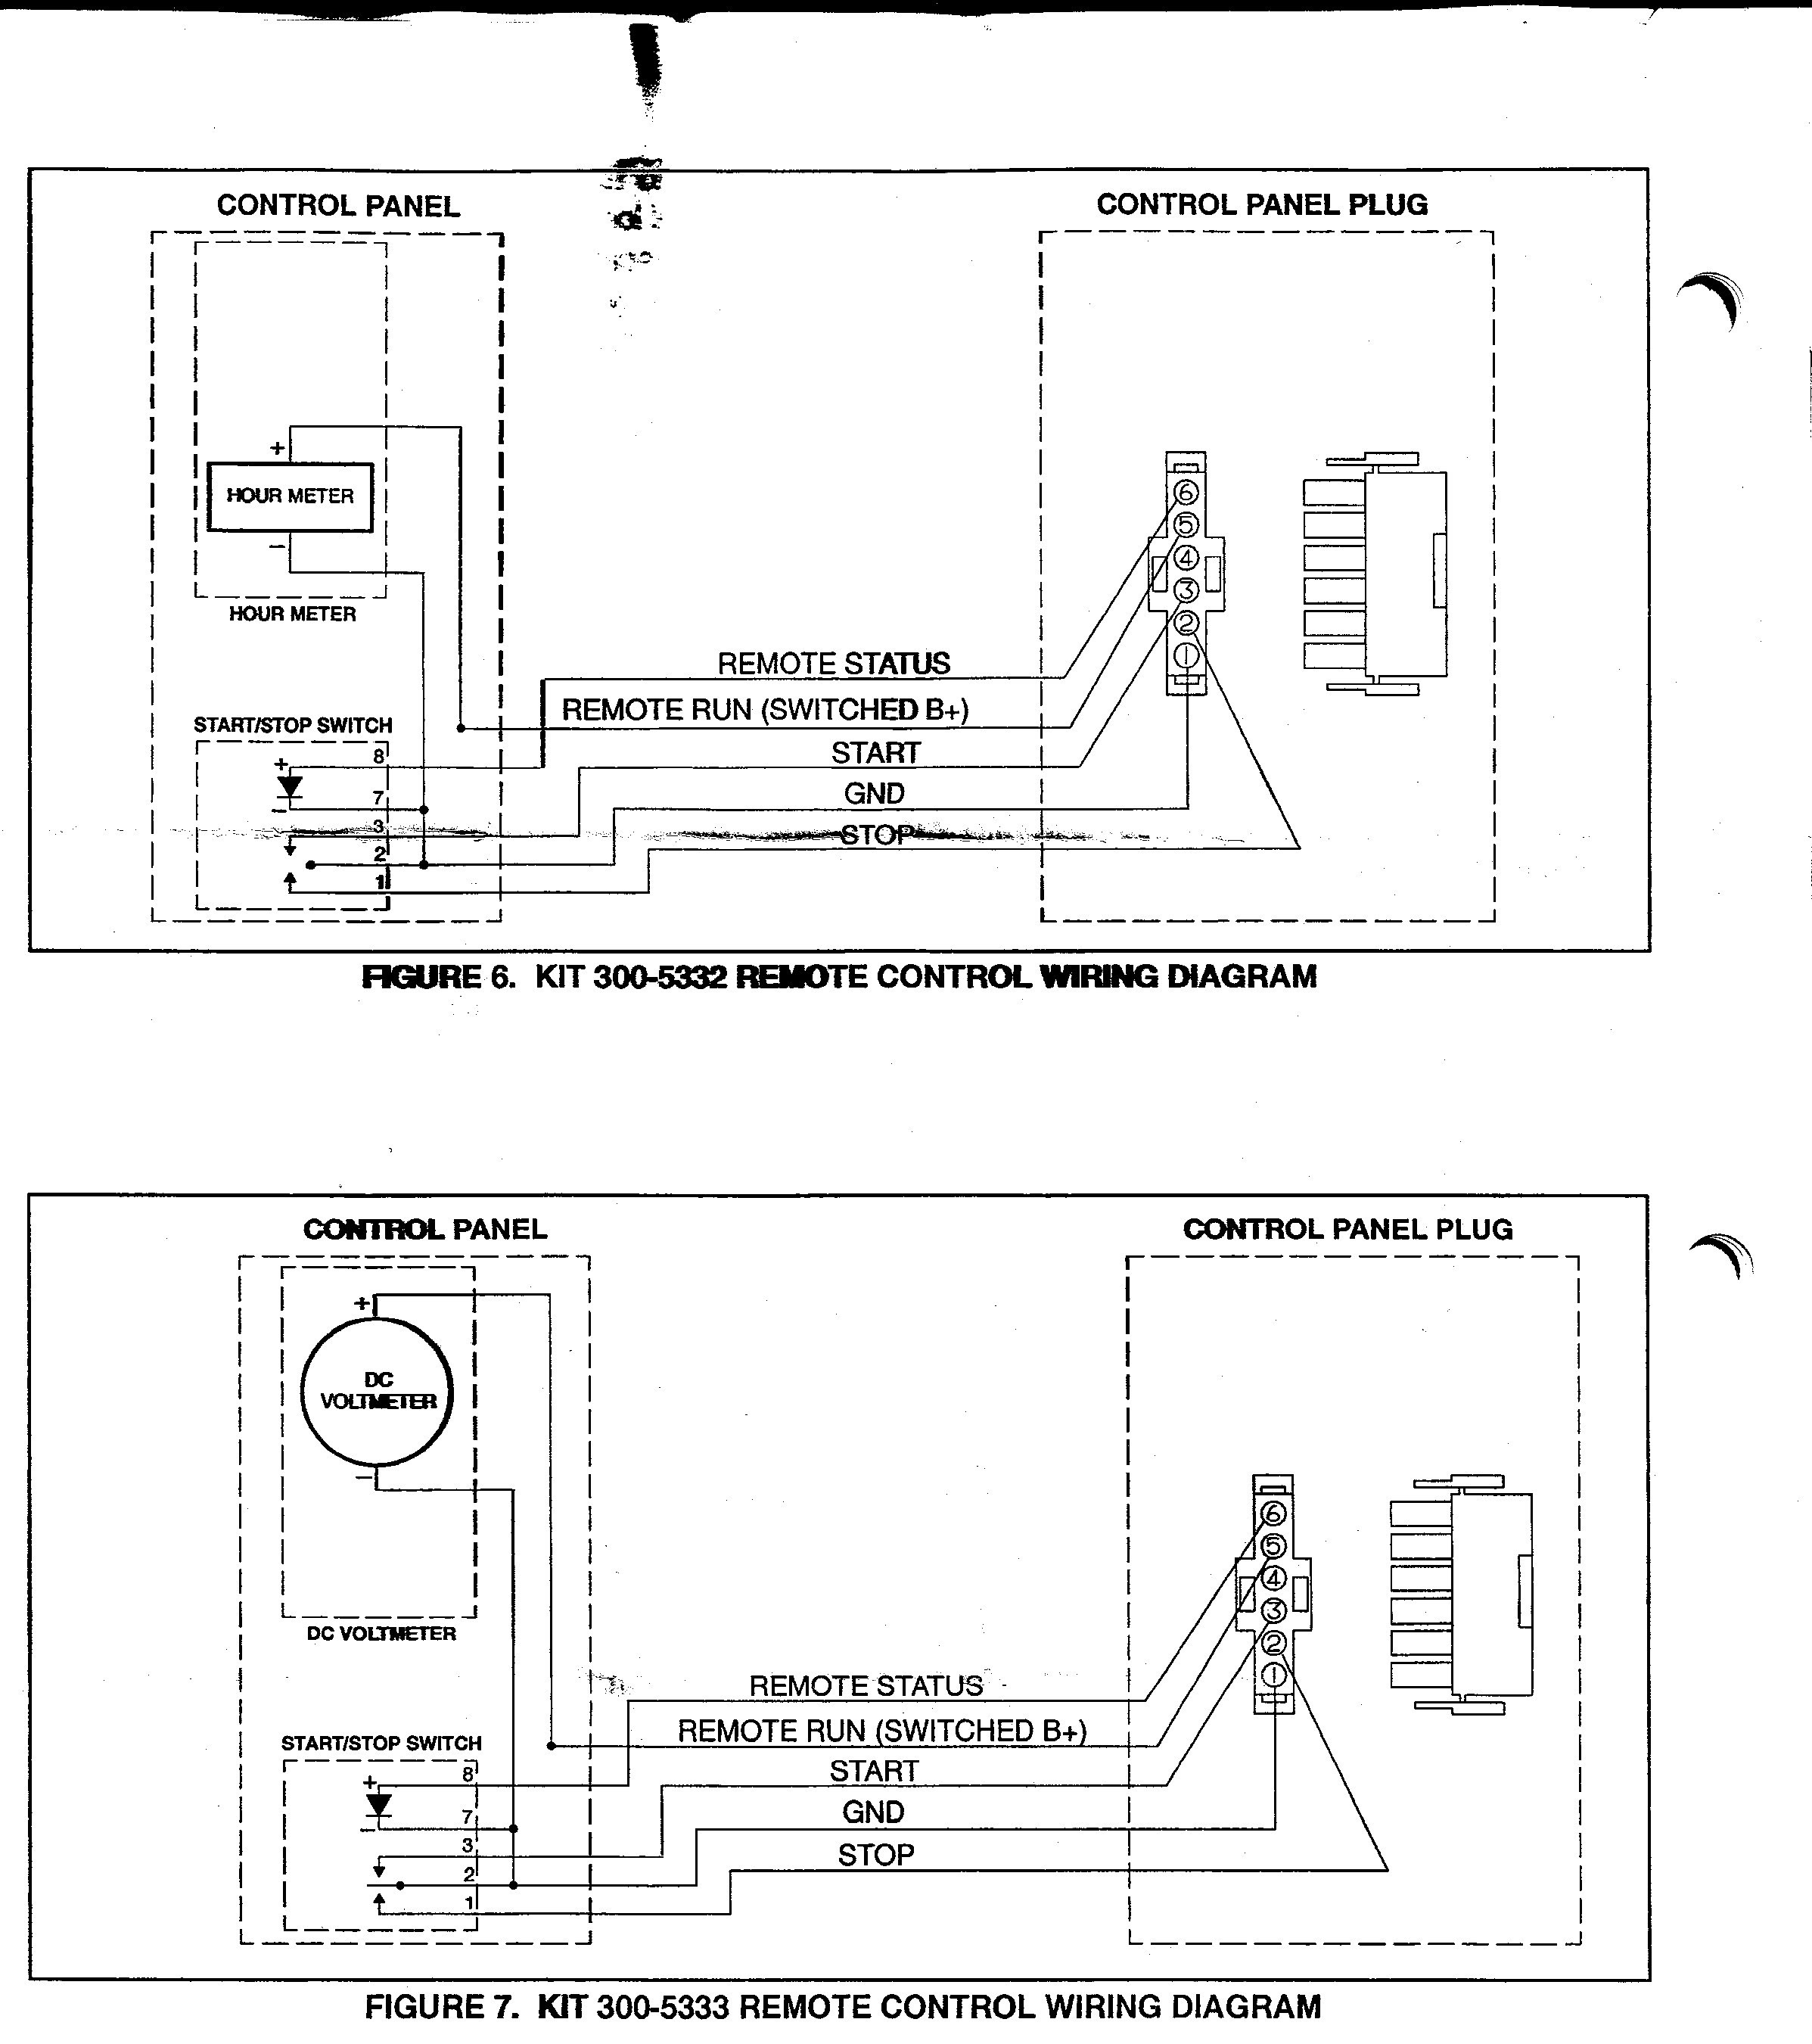 onan rv generator wiring diagram gallery wiring diagram sample rh faceitsalon com Onan RV Generator Schematics onan wiring schematics